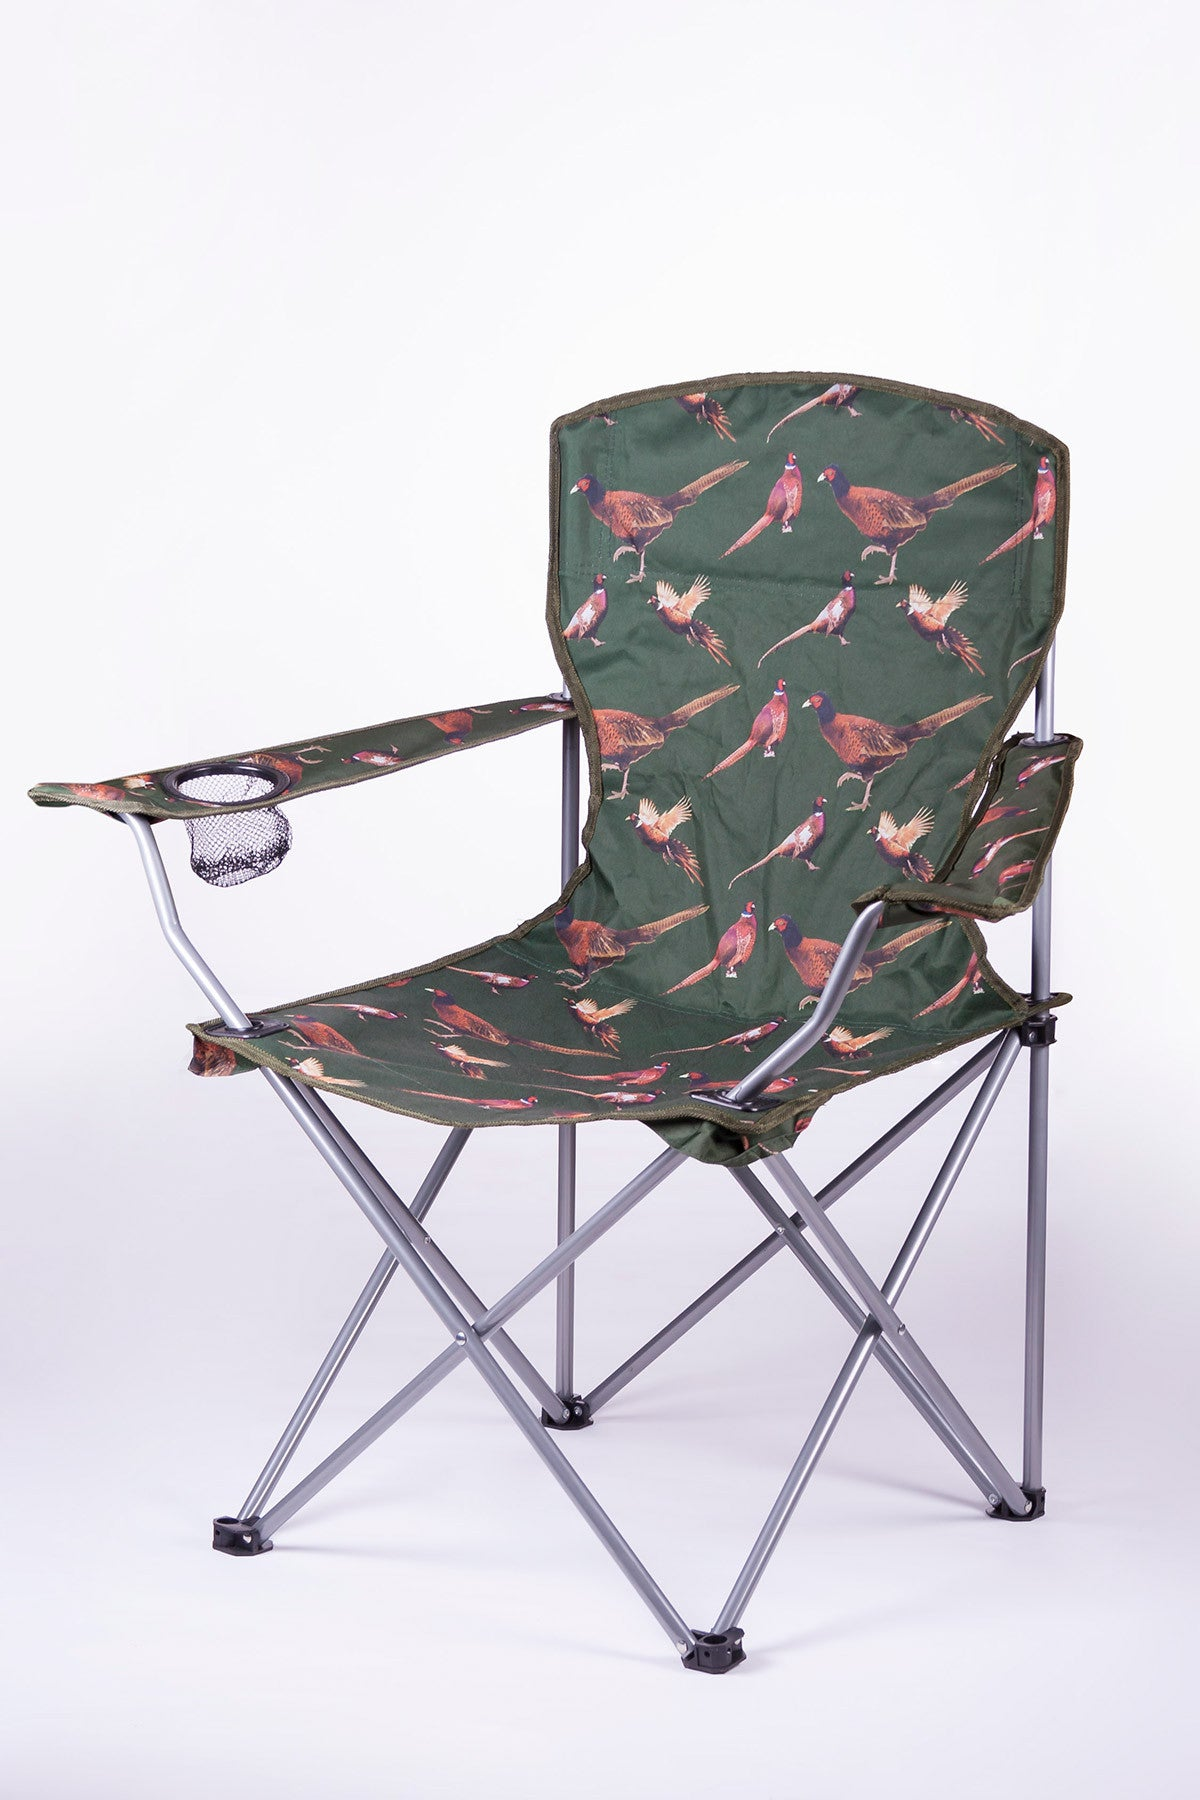 Rydale Patterned Folding Camping Chair